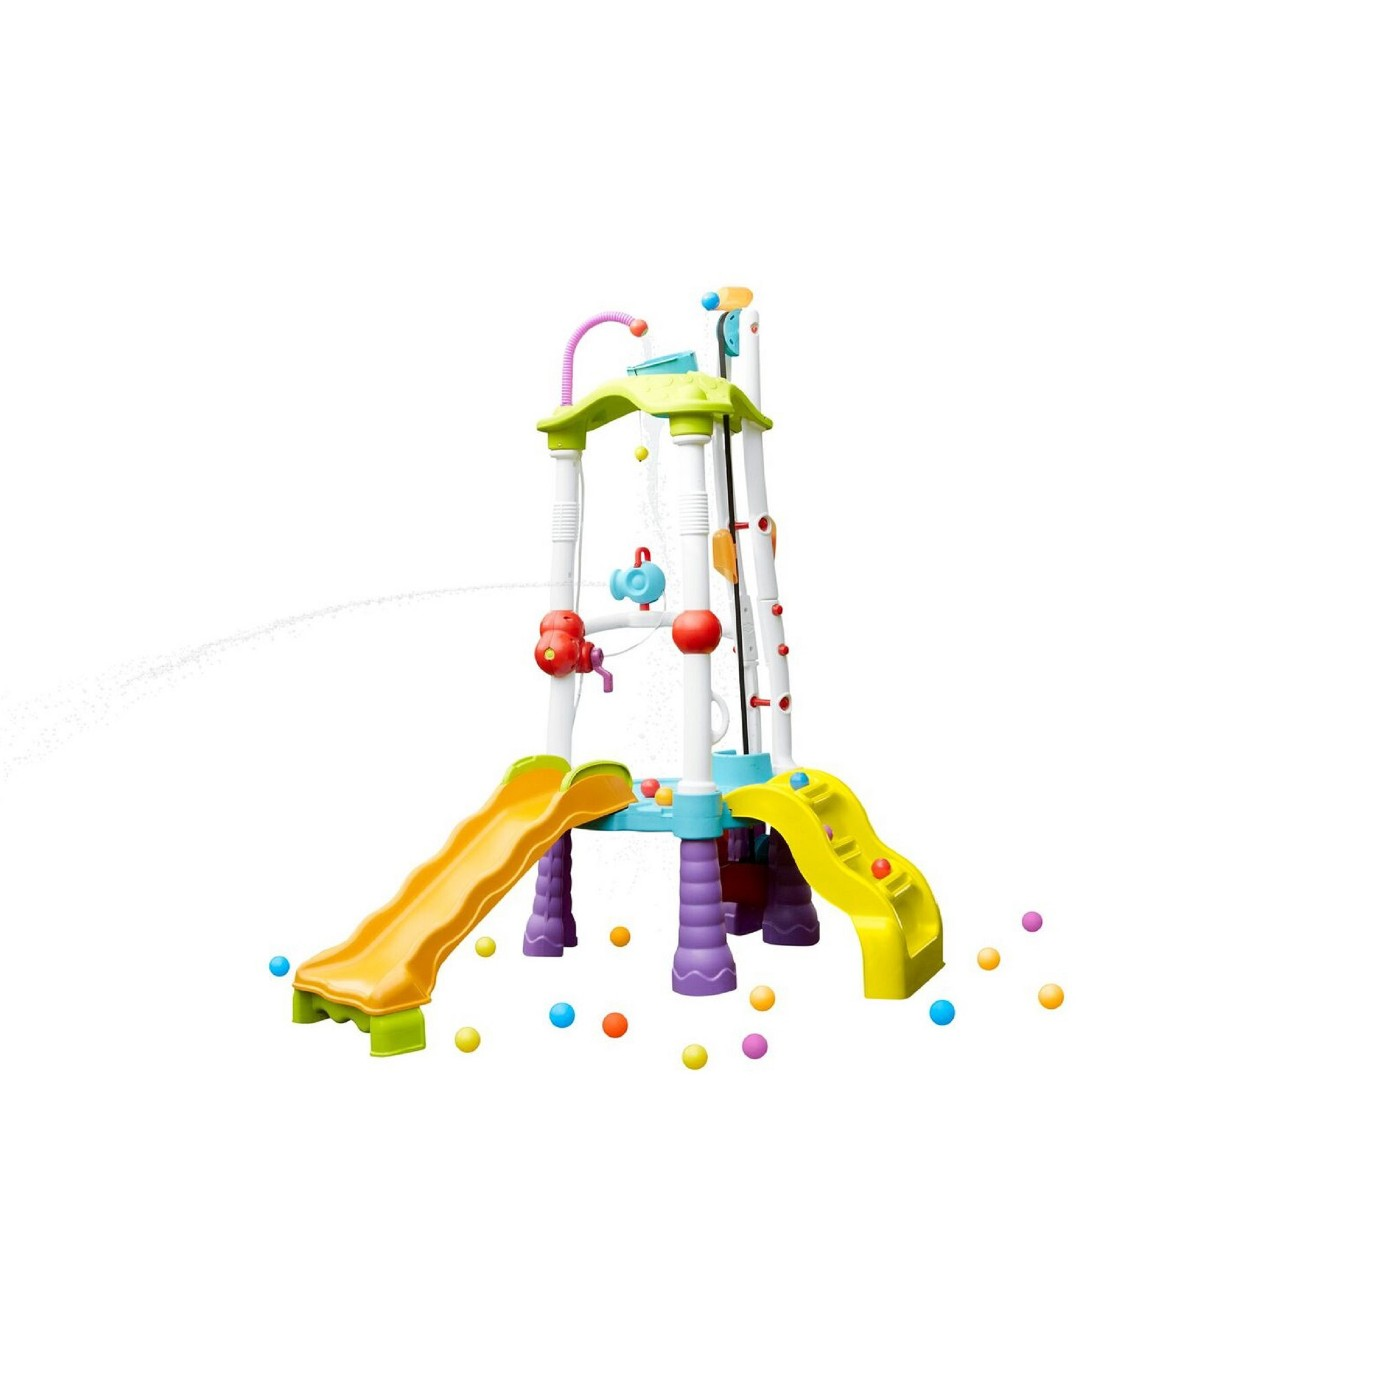 Little Tikes Tumblin Tower Climber - image 1 of 5